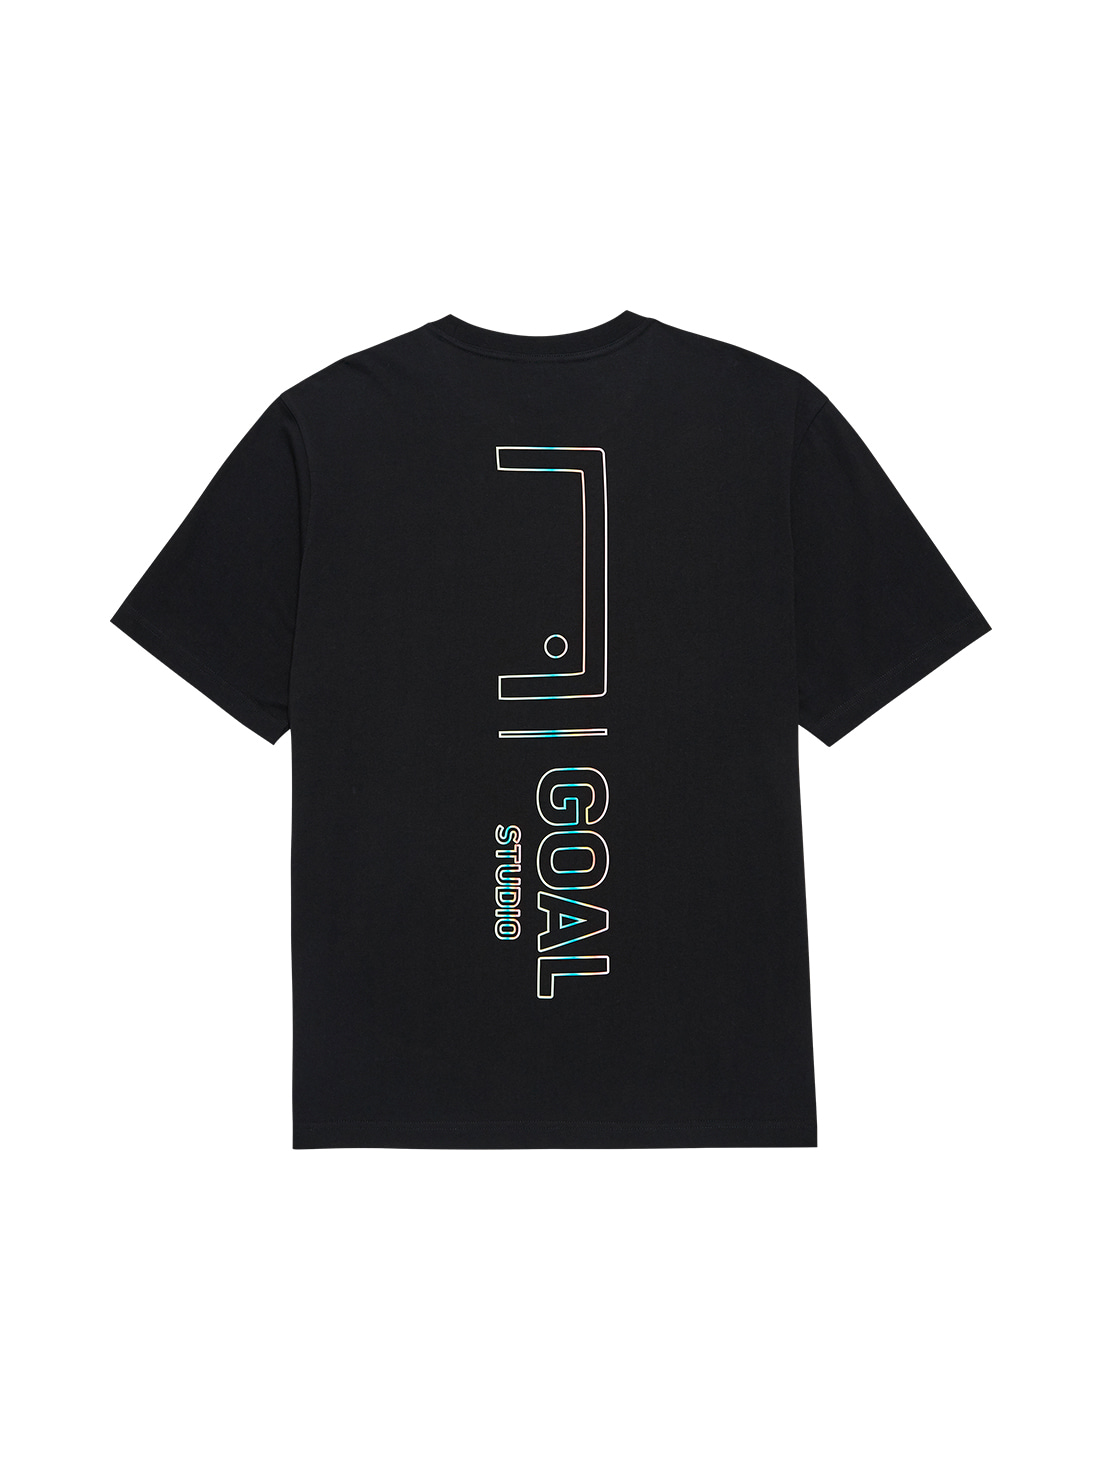 COMPOSITE LOGO TEE - BLACK